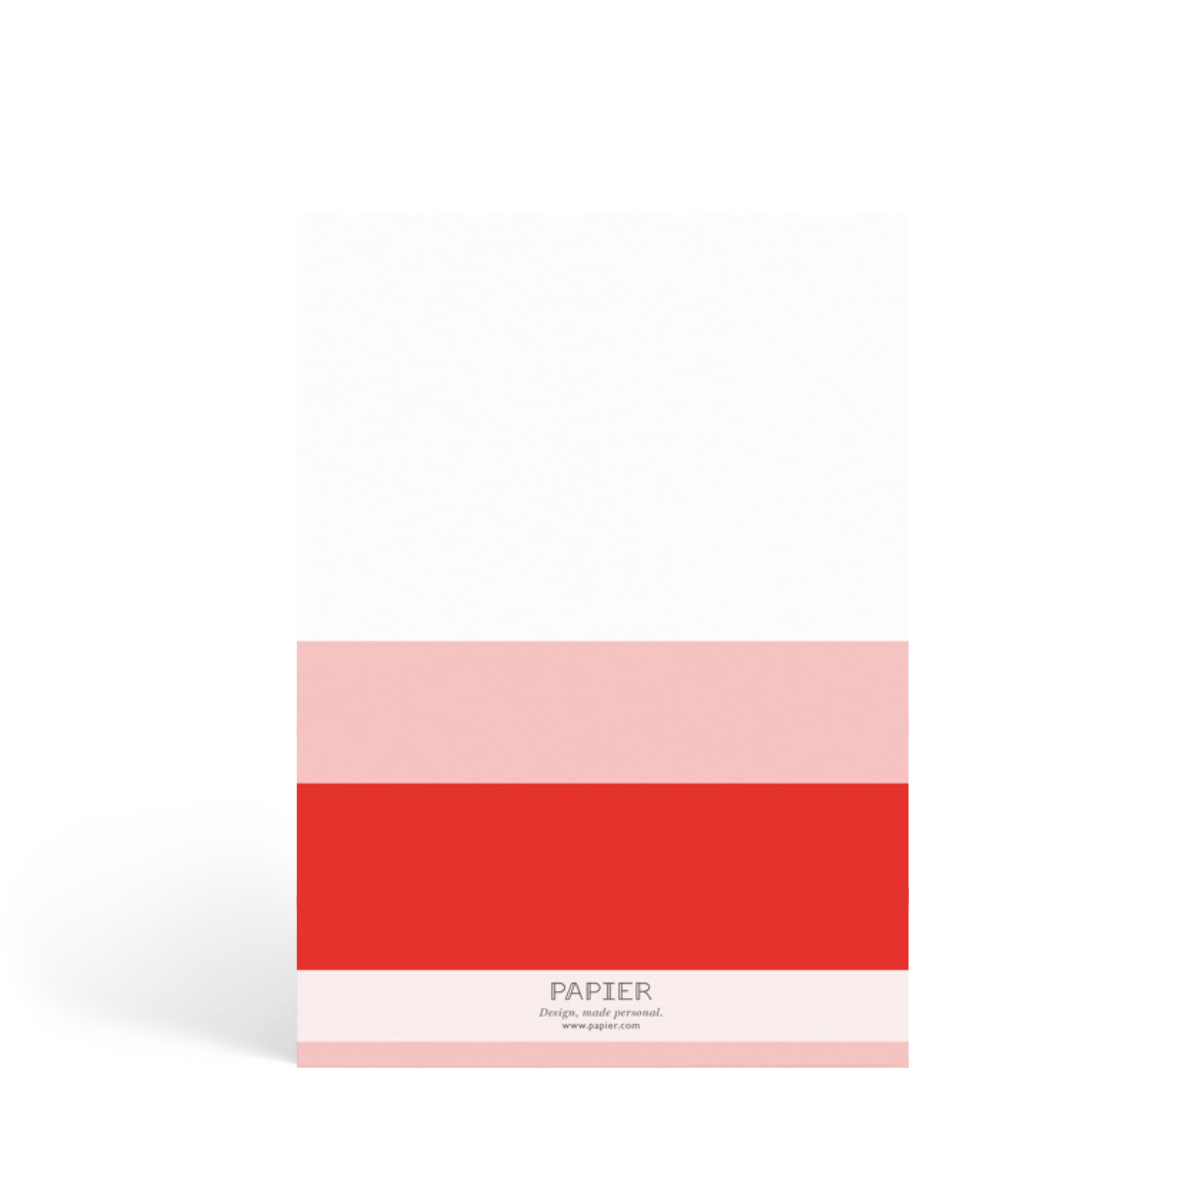 Https%3a%2f%2fwww.papier.com%2fproduct image%2f90143%2f5%2fstriped colourblock pink red 22546 back 1569935950.png?ixlib=rb 1.1